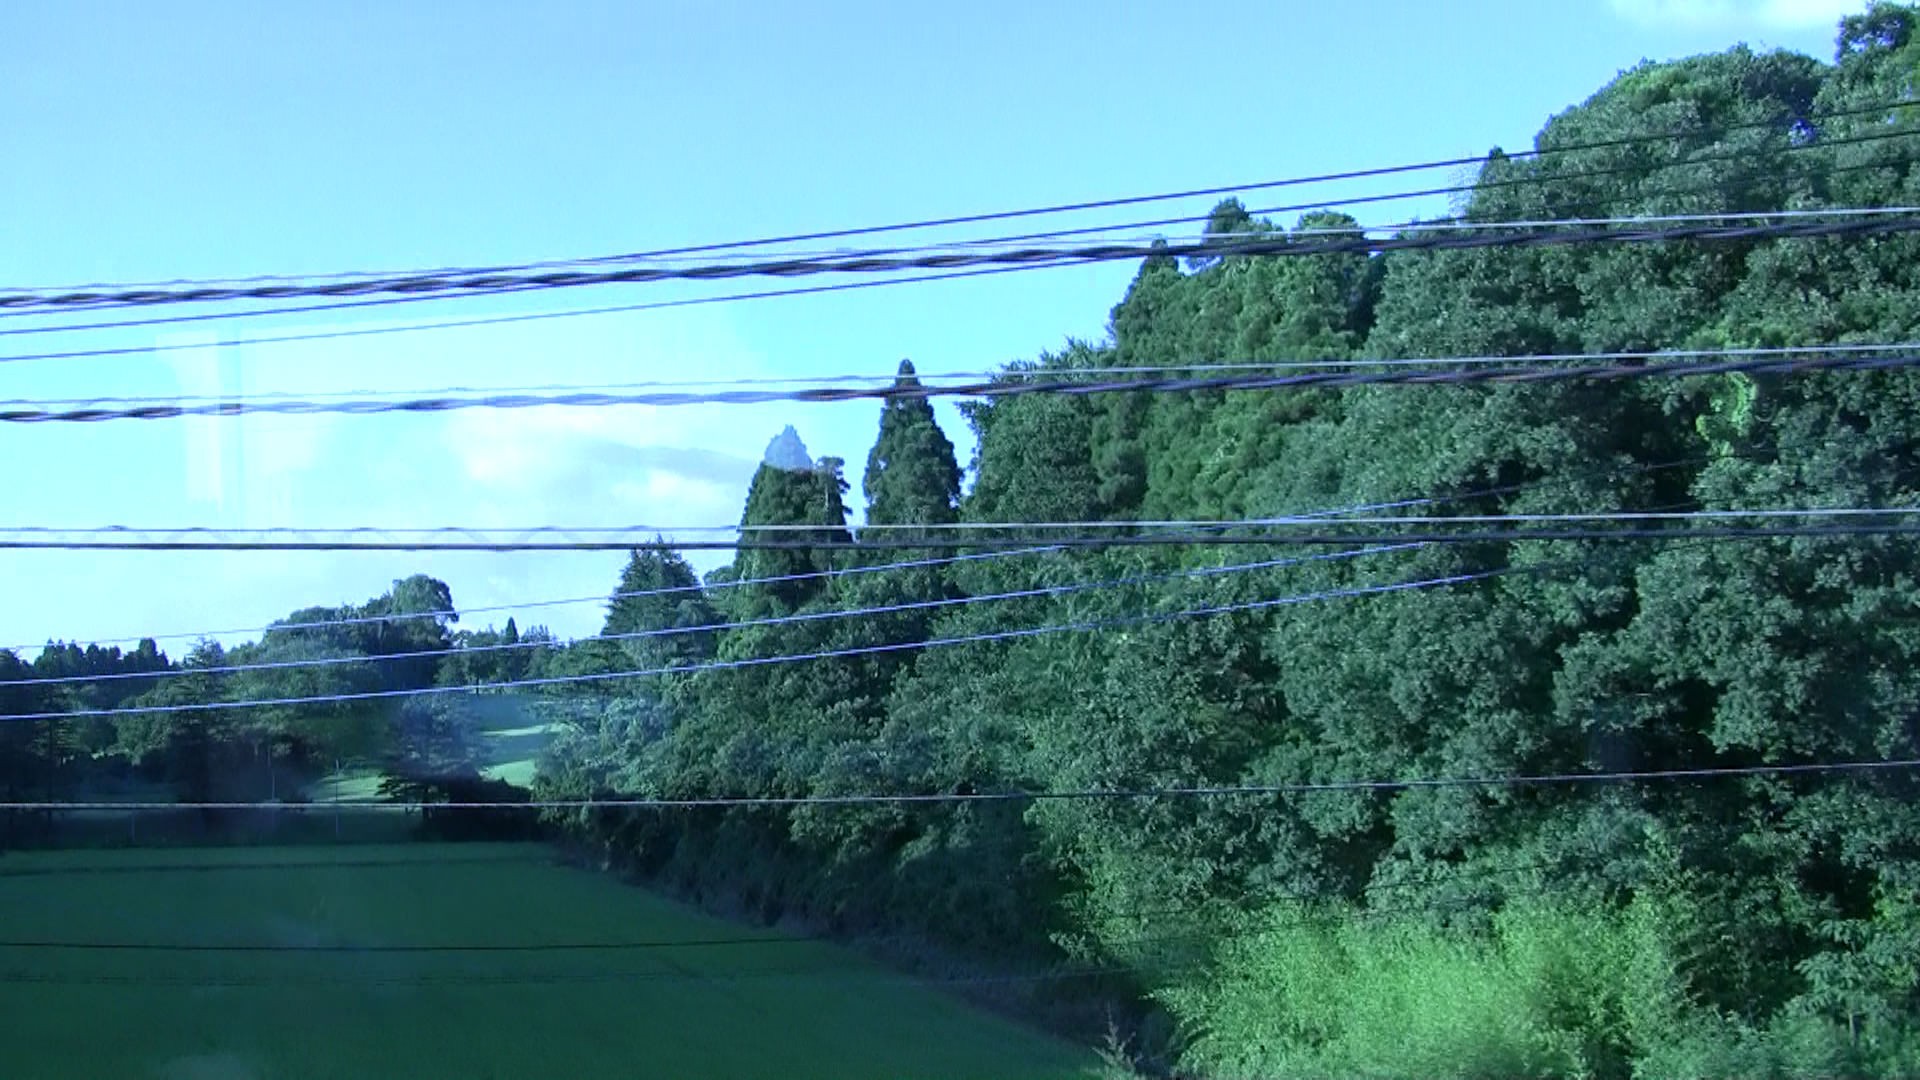 The view outside the Narita Express on our way to Shinagawa Station.